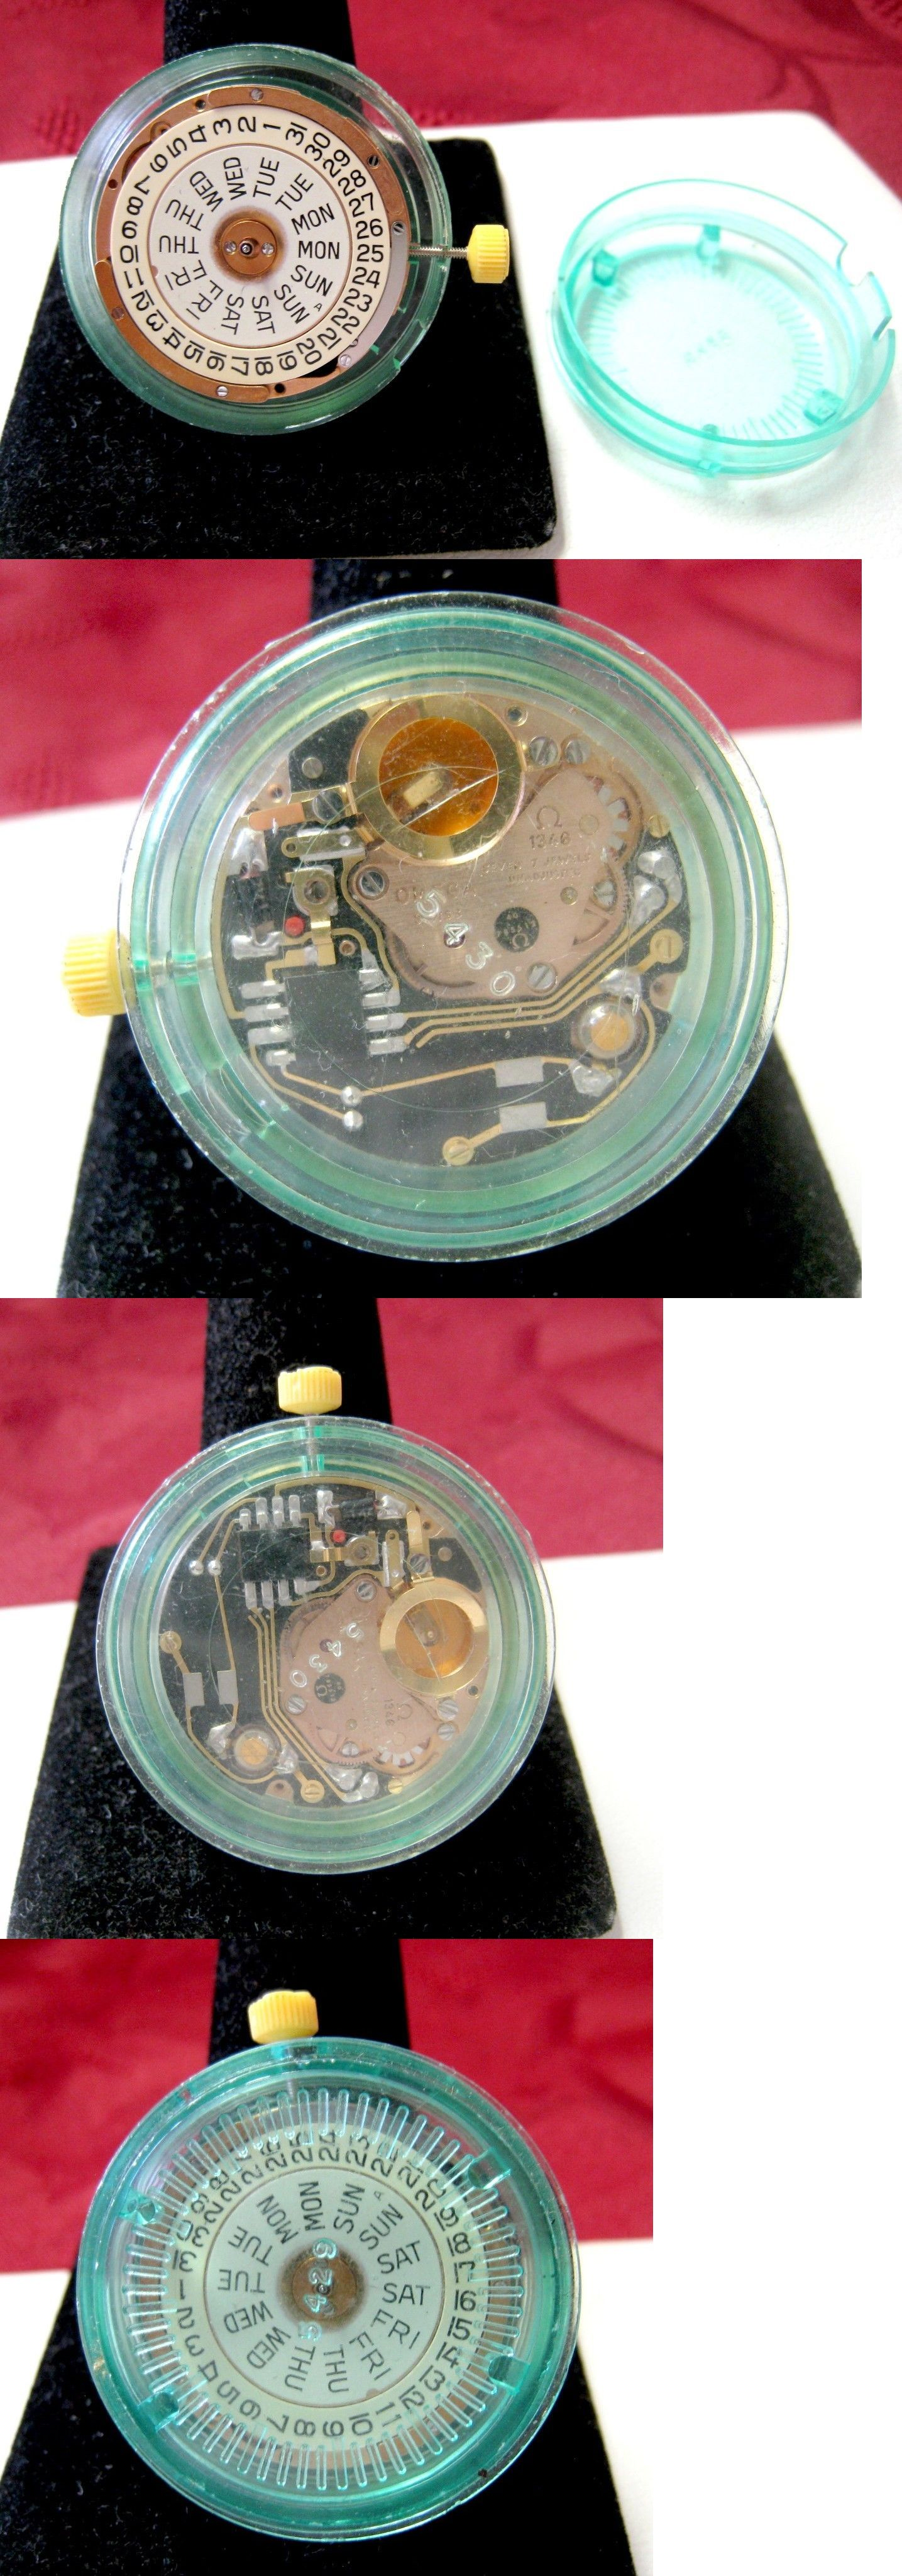 Seamaster 300 Dial fit ETA 2824 or MIYOTA 8215 Movement with Date White Lume.Diameter is 31.15mm.